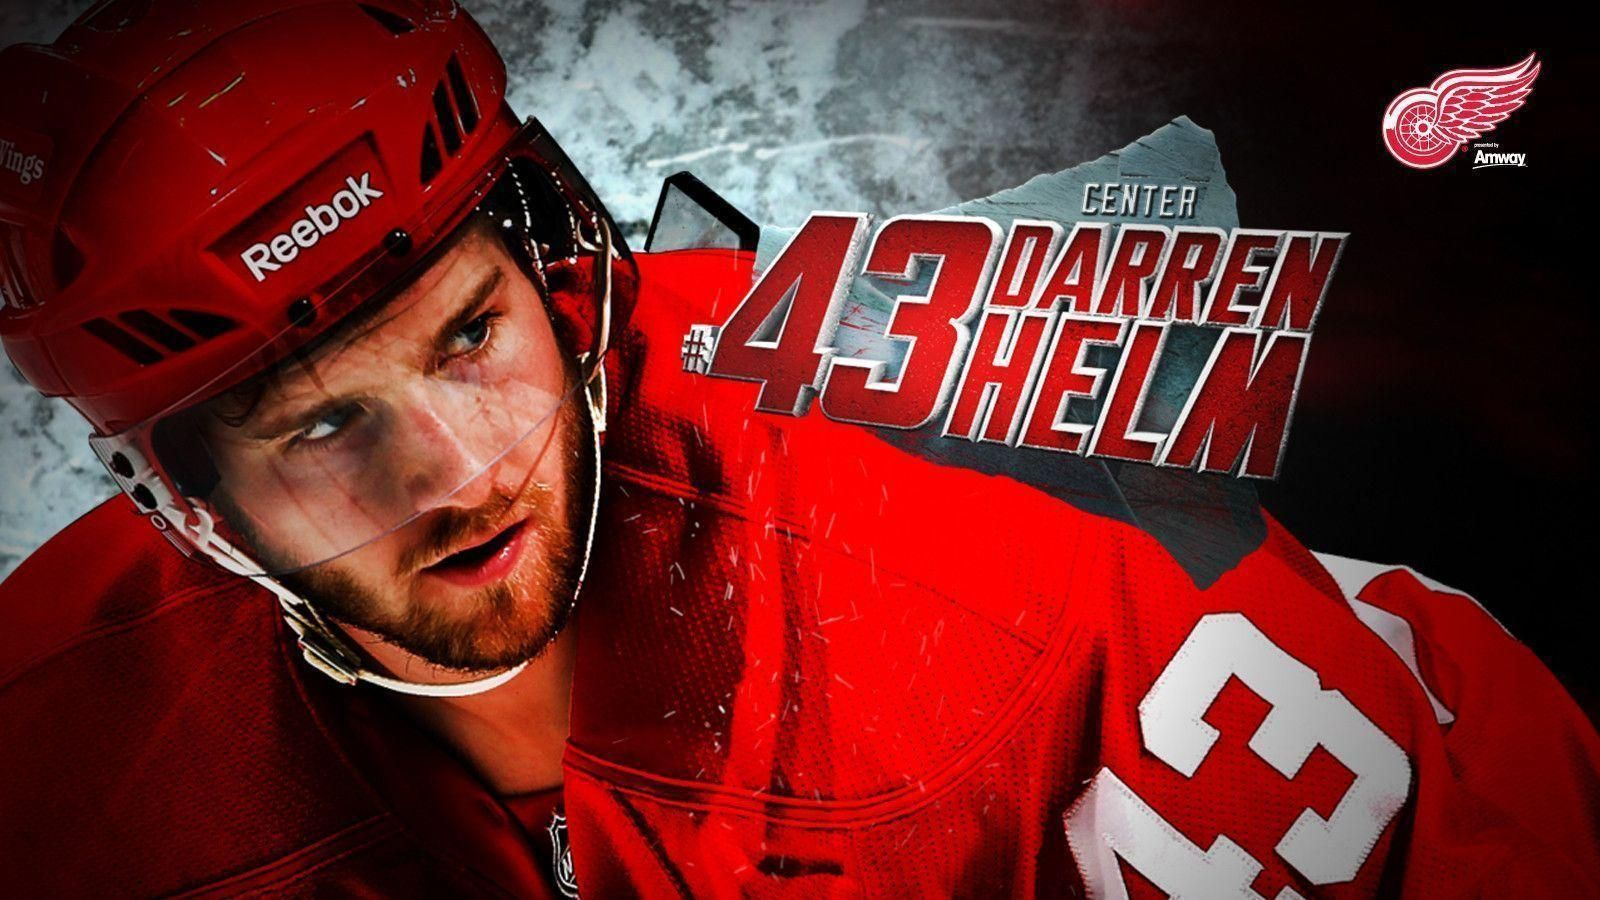 Pin on 200+ Detroit Red Wings Wallpaper